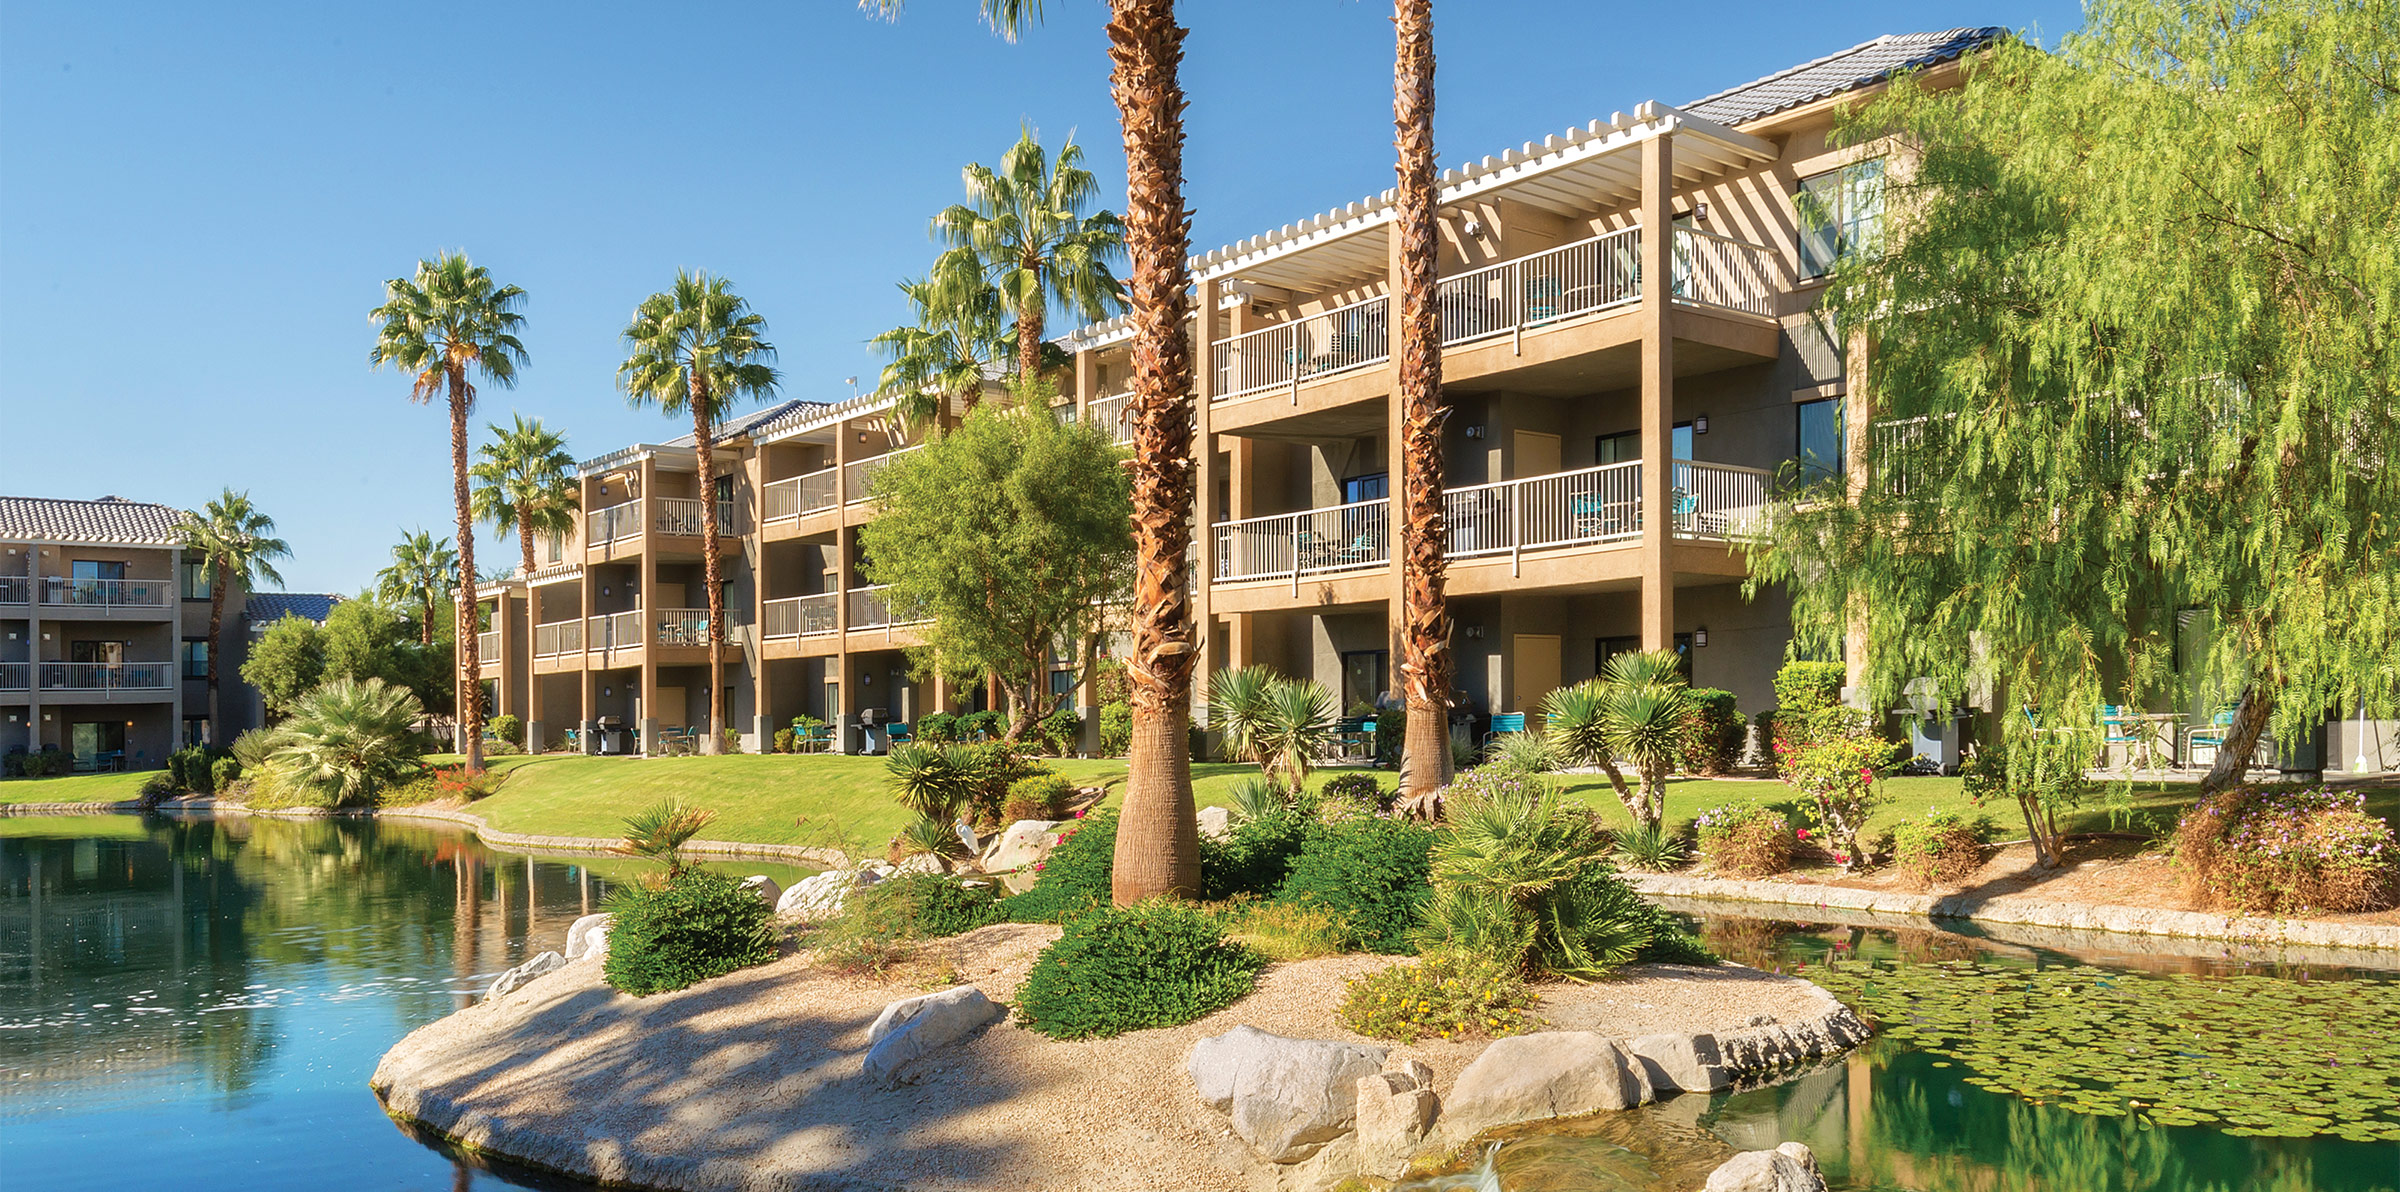 Apartment 3 Bedroom 2 Bath In Indio  CA   Palm Springs  5 miles from COACHELLA photo 20365763